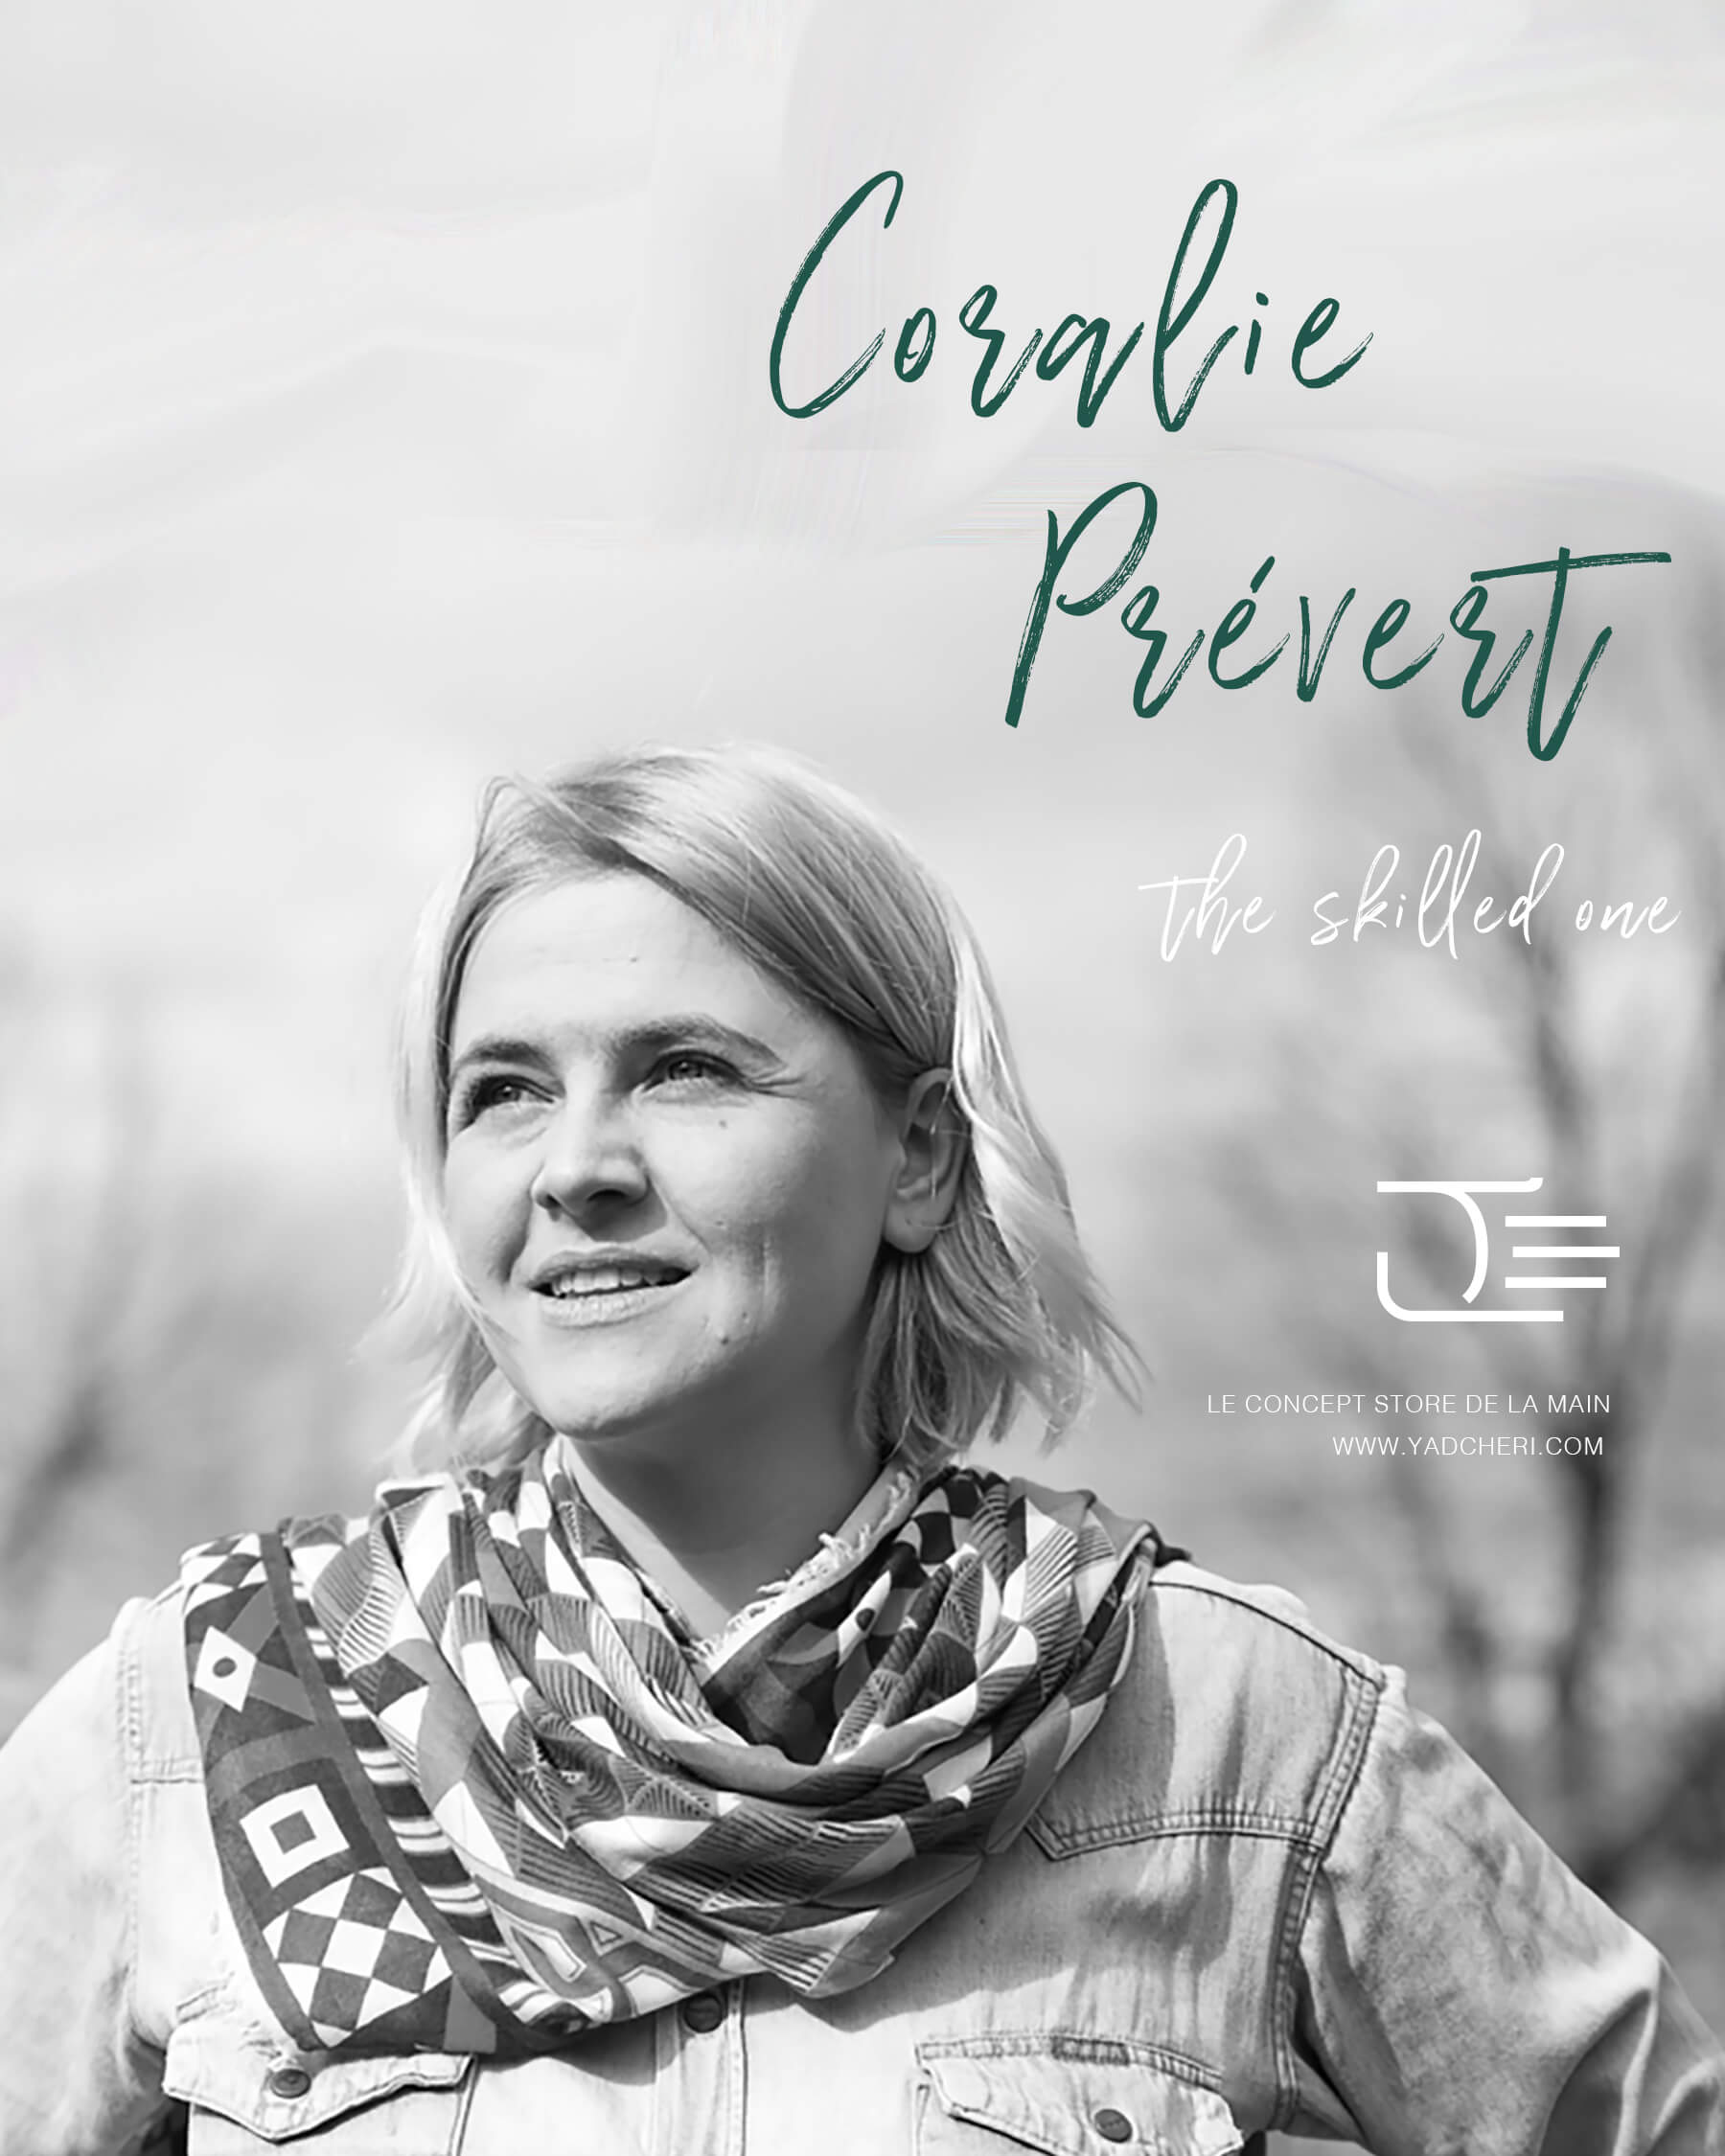 Like her famous namesake, the poet Jacques Prévert, Coralie shares a love of languages. Her 12 month stay in Italy turns into 12 years. Her goal changes and a new career option surfaces.